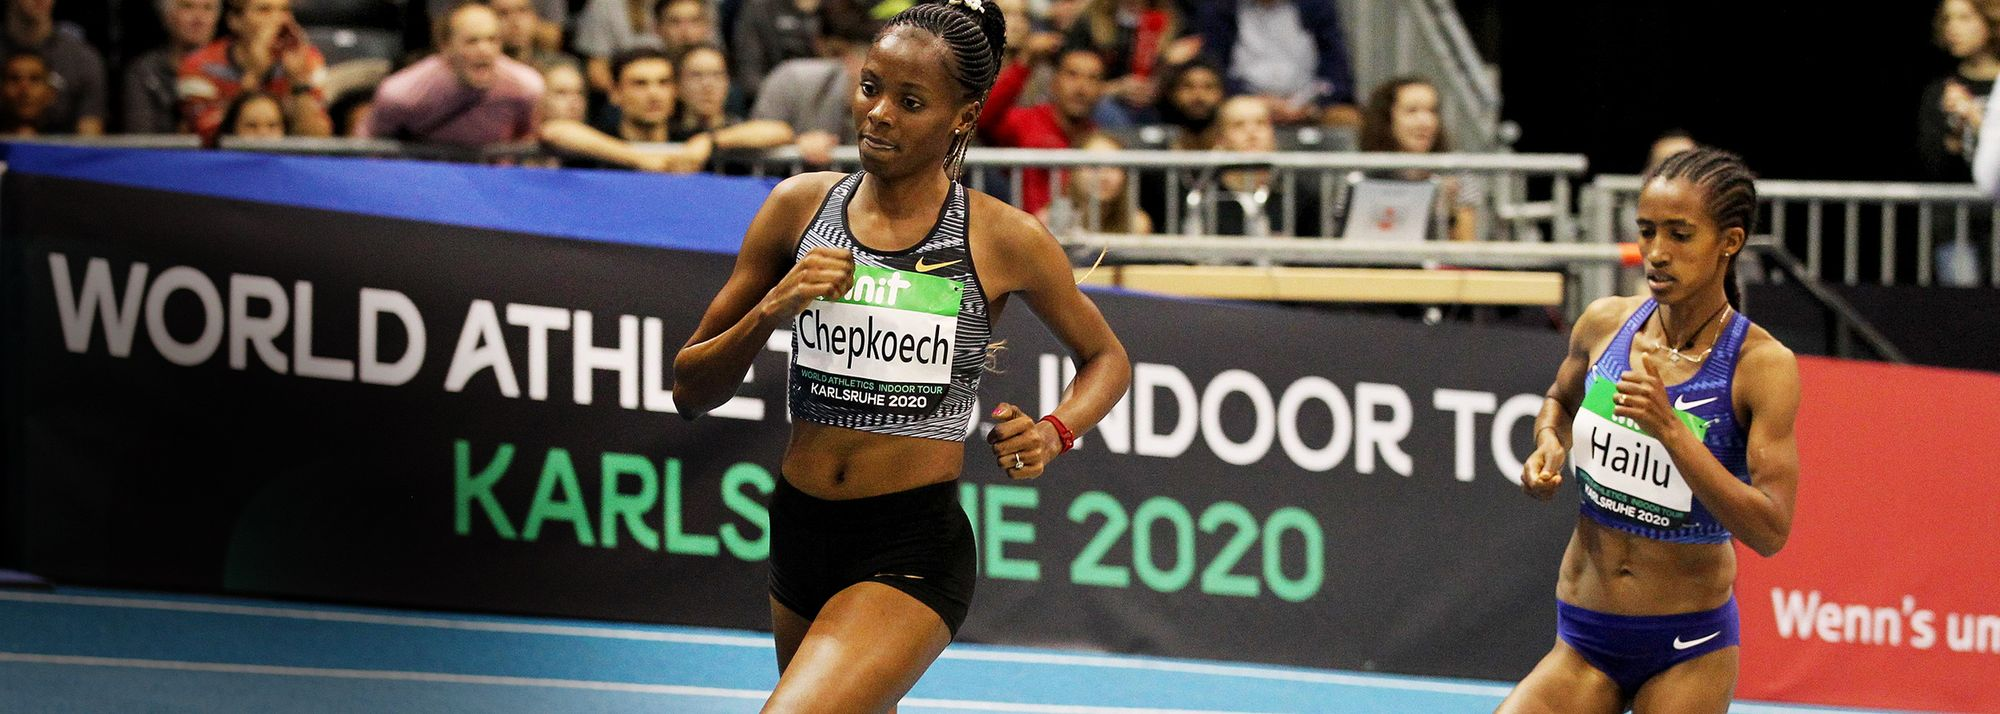 World champions Chepkoech and Asher-Smith set to star at first World Athletics Indoor Tour Gold meeting of 2021